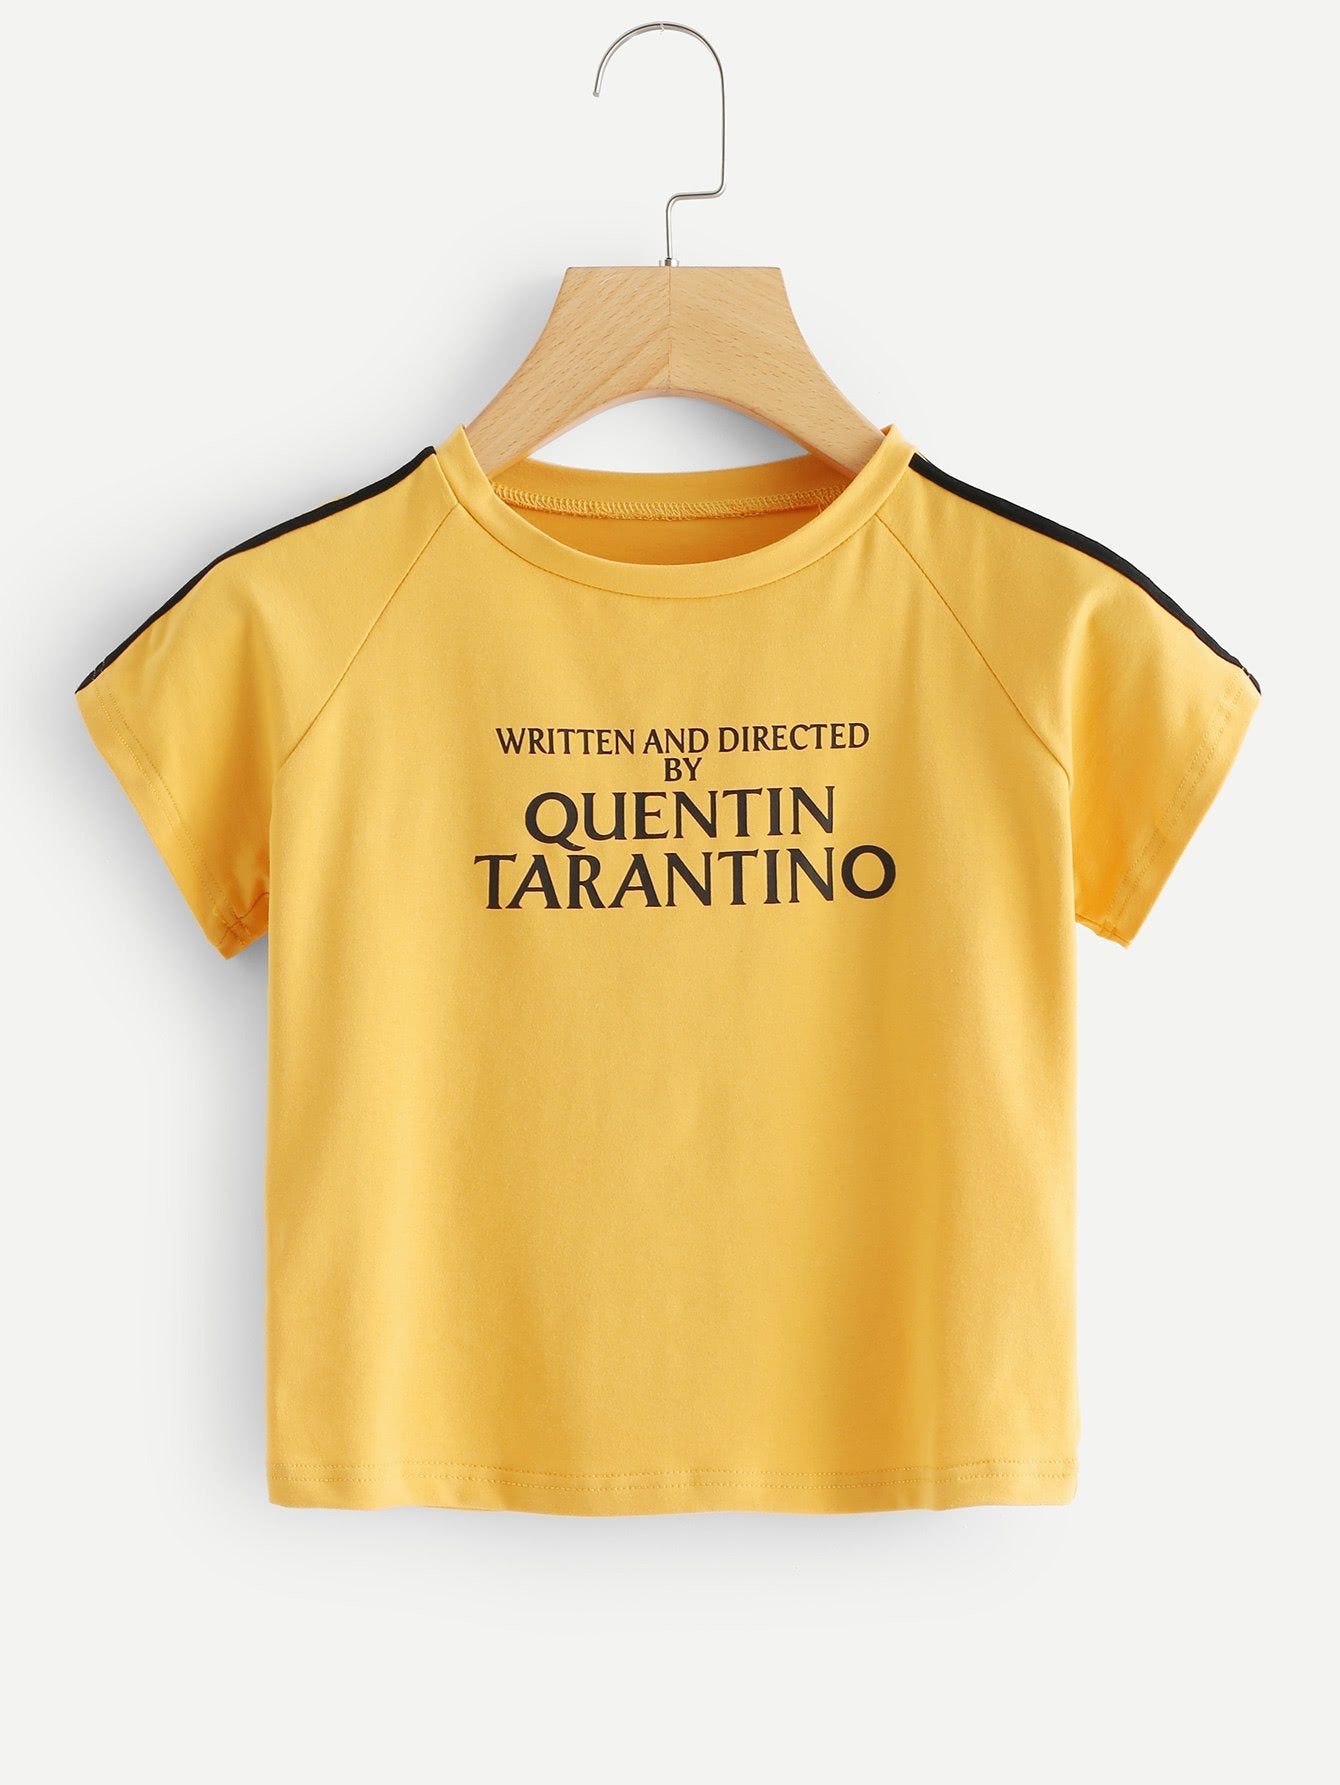 Written and directed by Quentin Tarantino crop top shirt